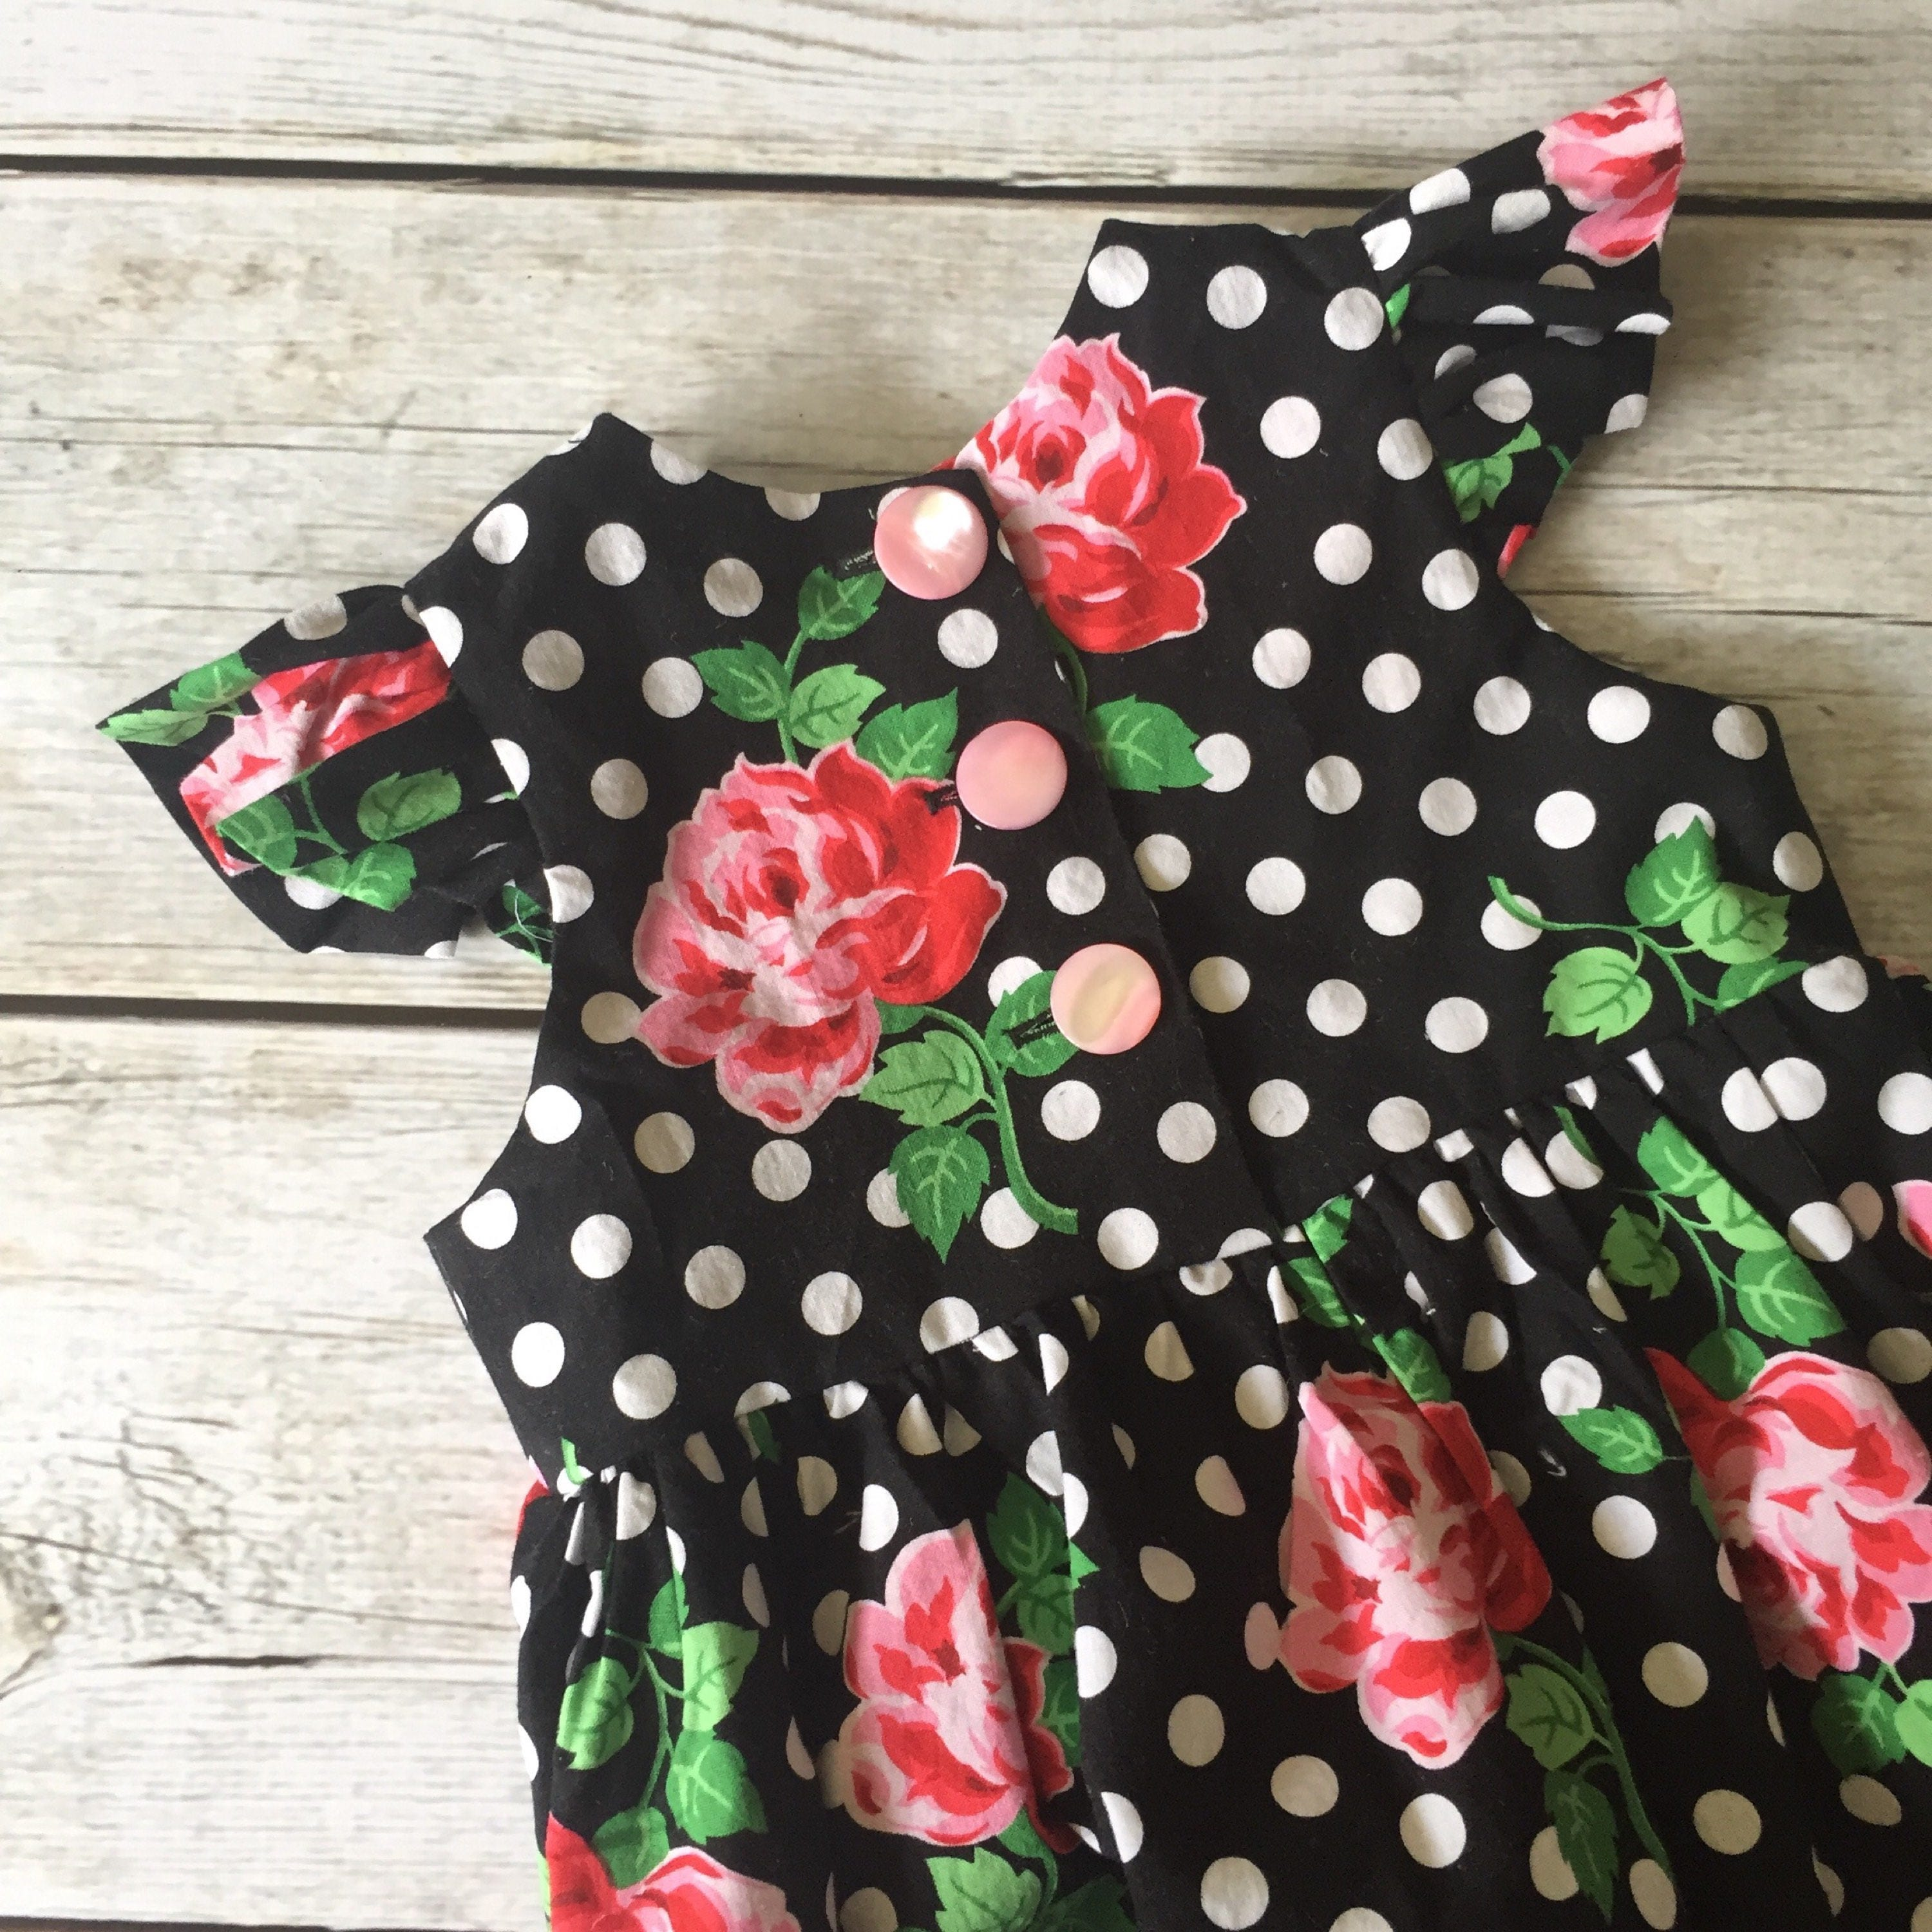 Vintage Style Dress Girls Polka Dot Dress Black White Pink Dress